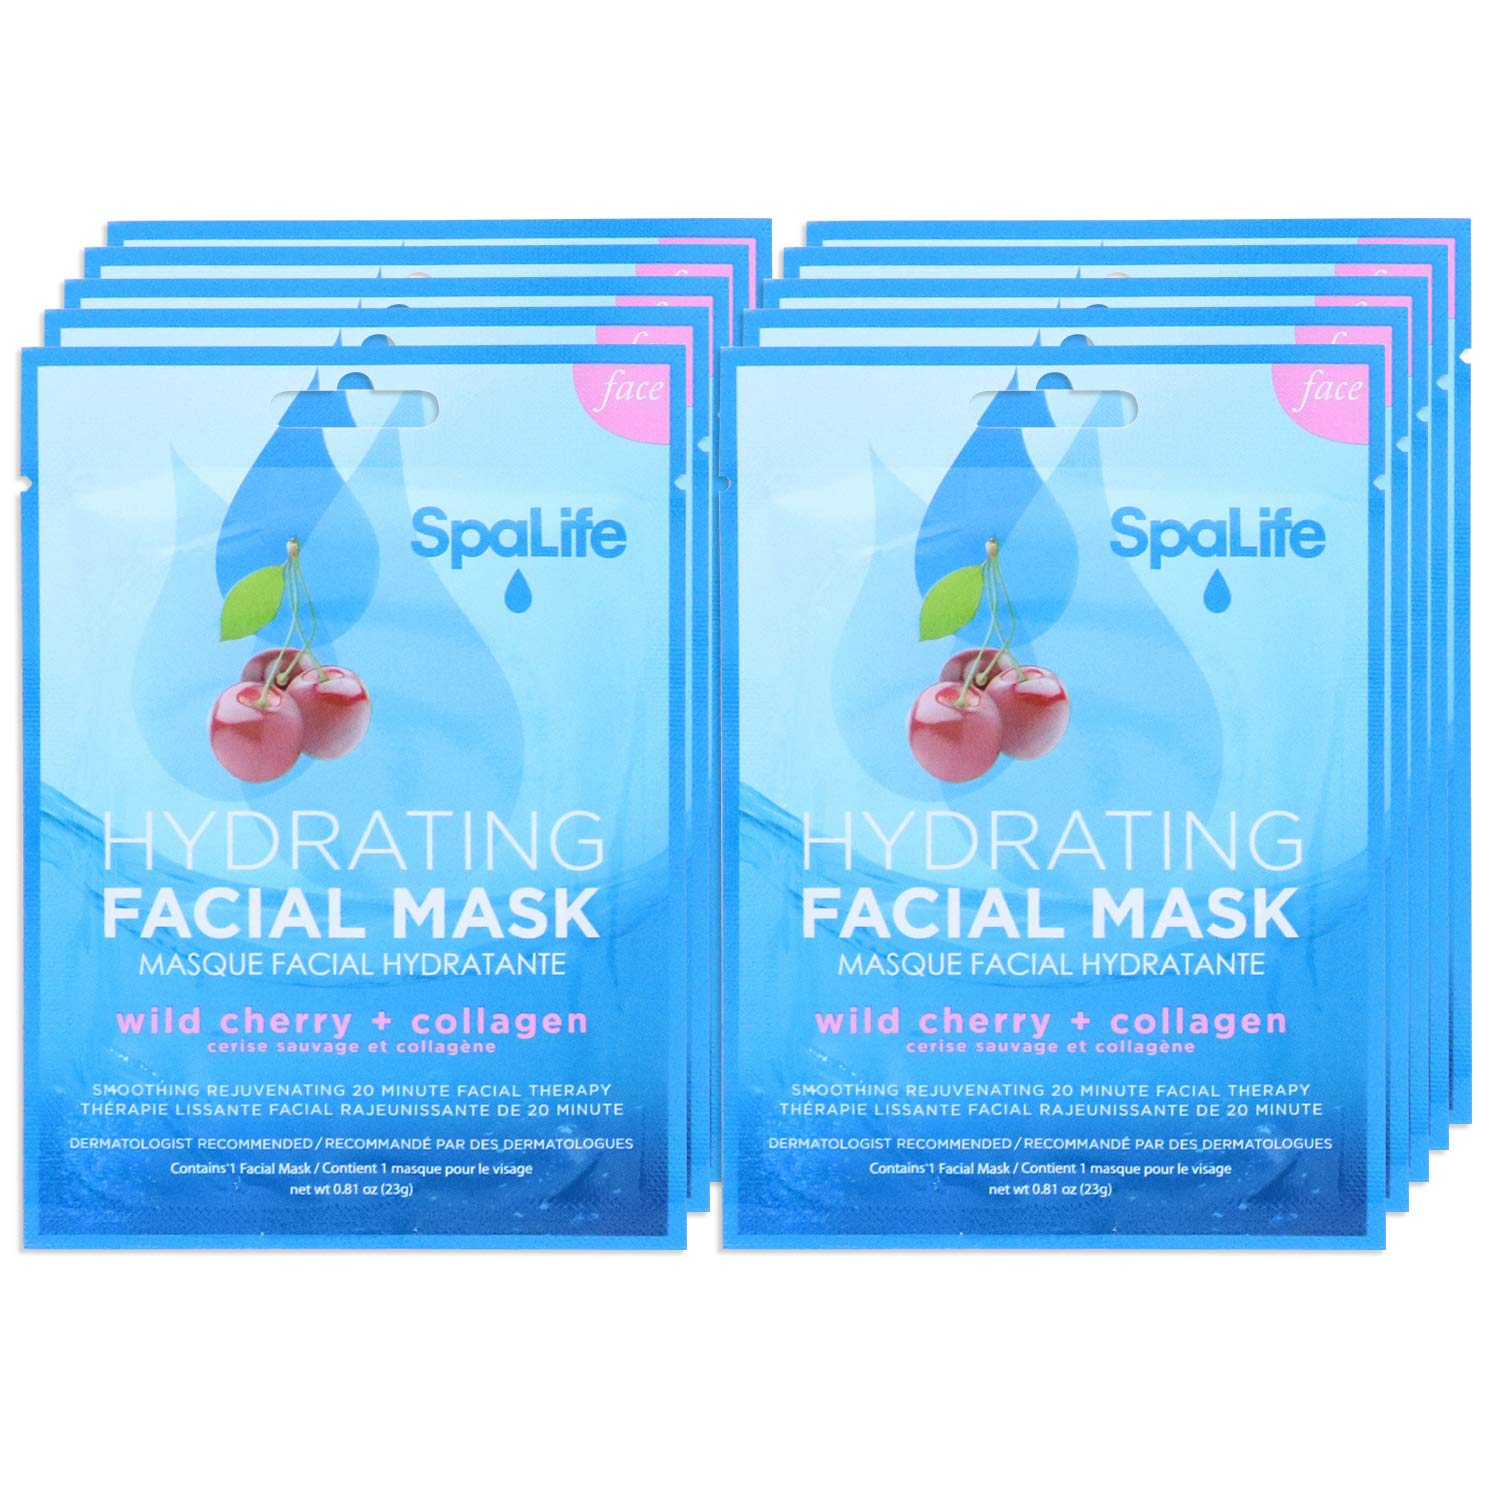 SpaLife Hydrating, Purifying, Anti-Aging, Detoxifying and Soothing Korean Facial Masks - 10 Masks (Wild Cherry + Collagen)